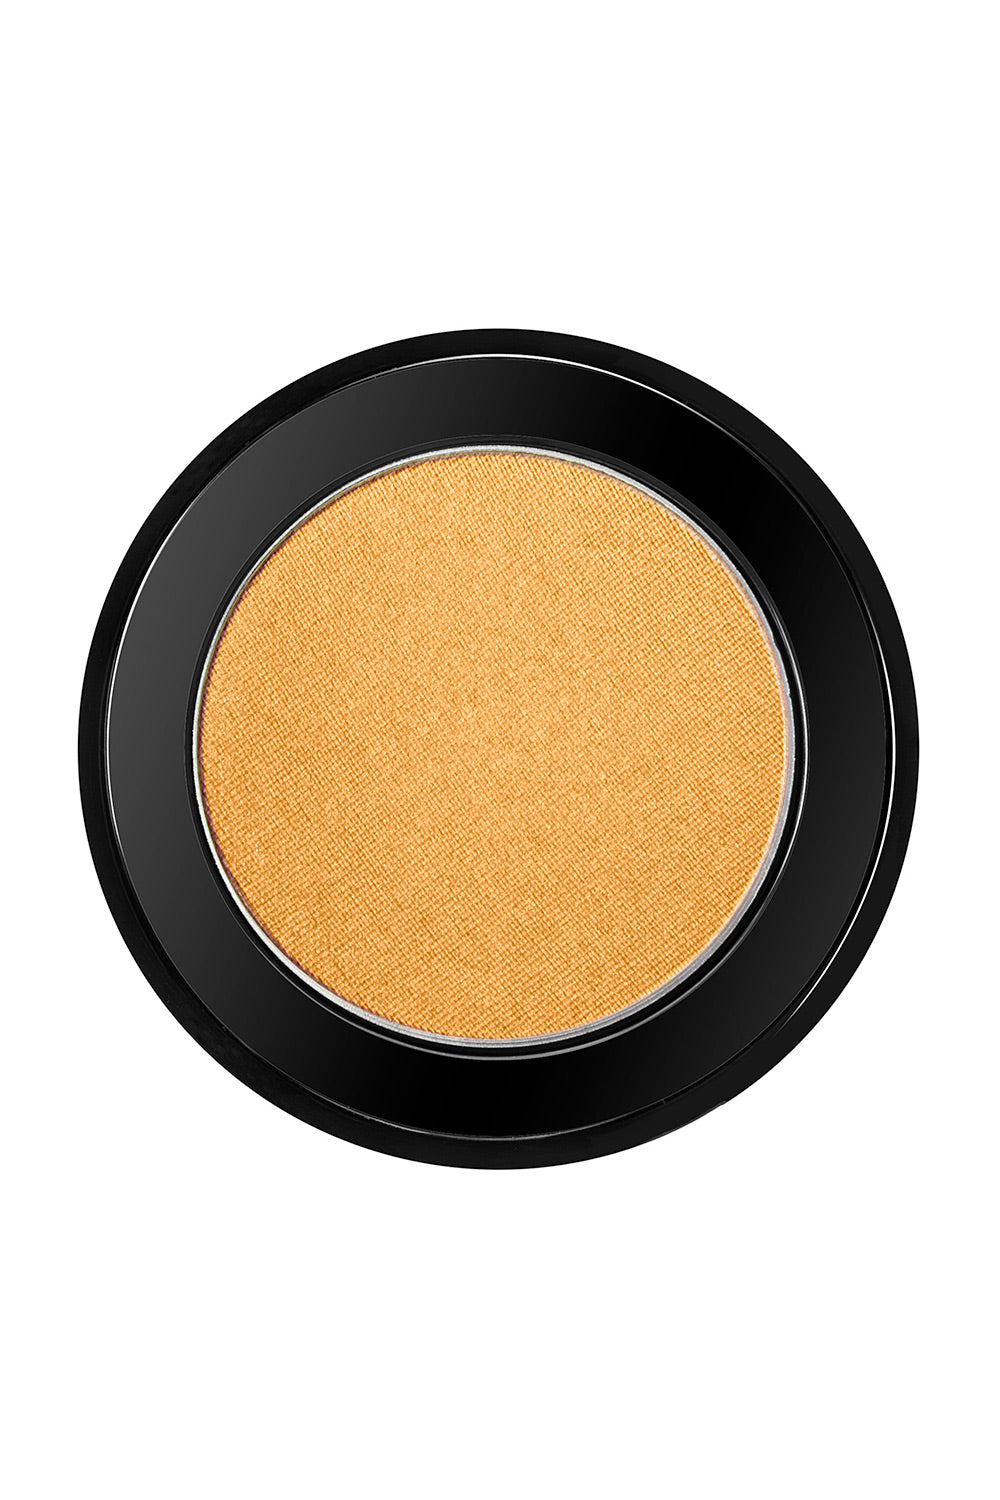 Type 3 Eyeshadow - Gold Digger